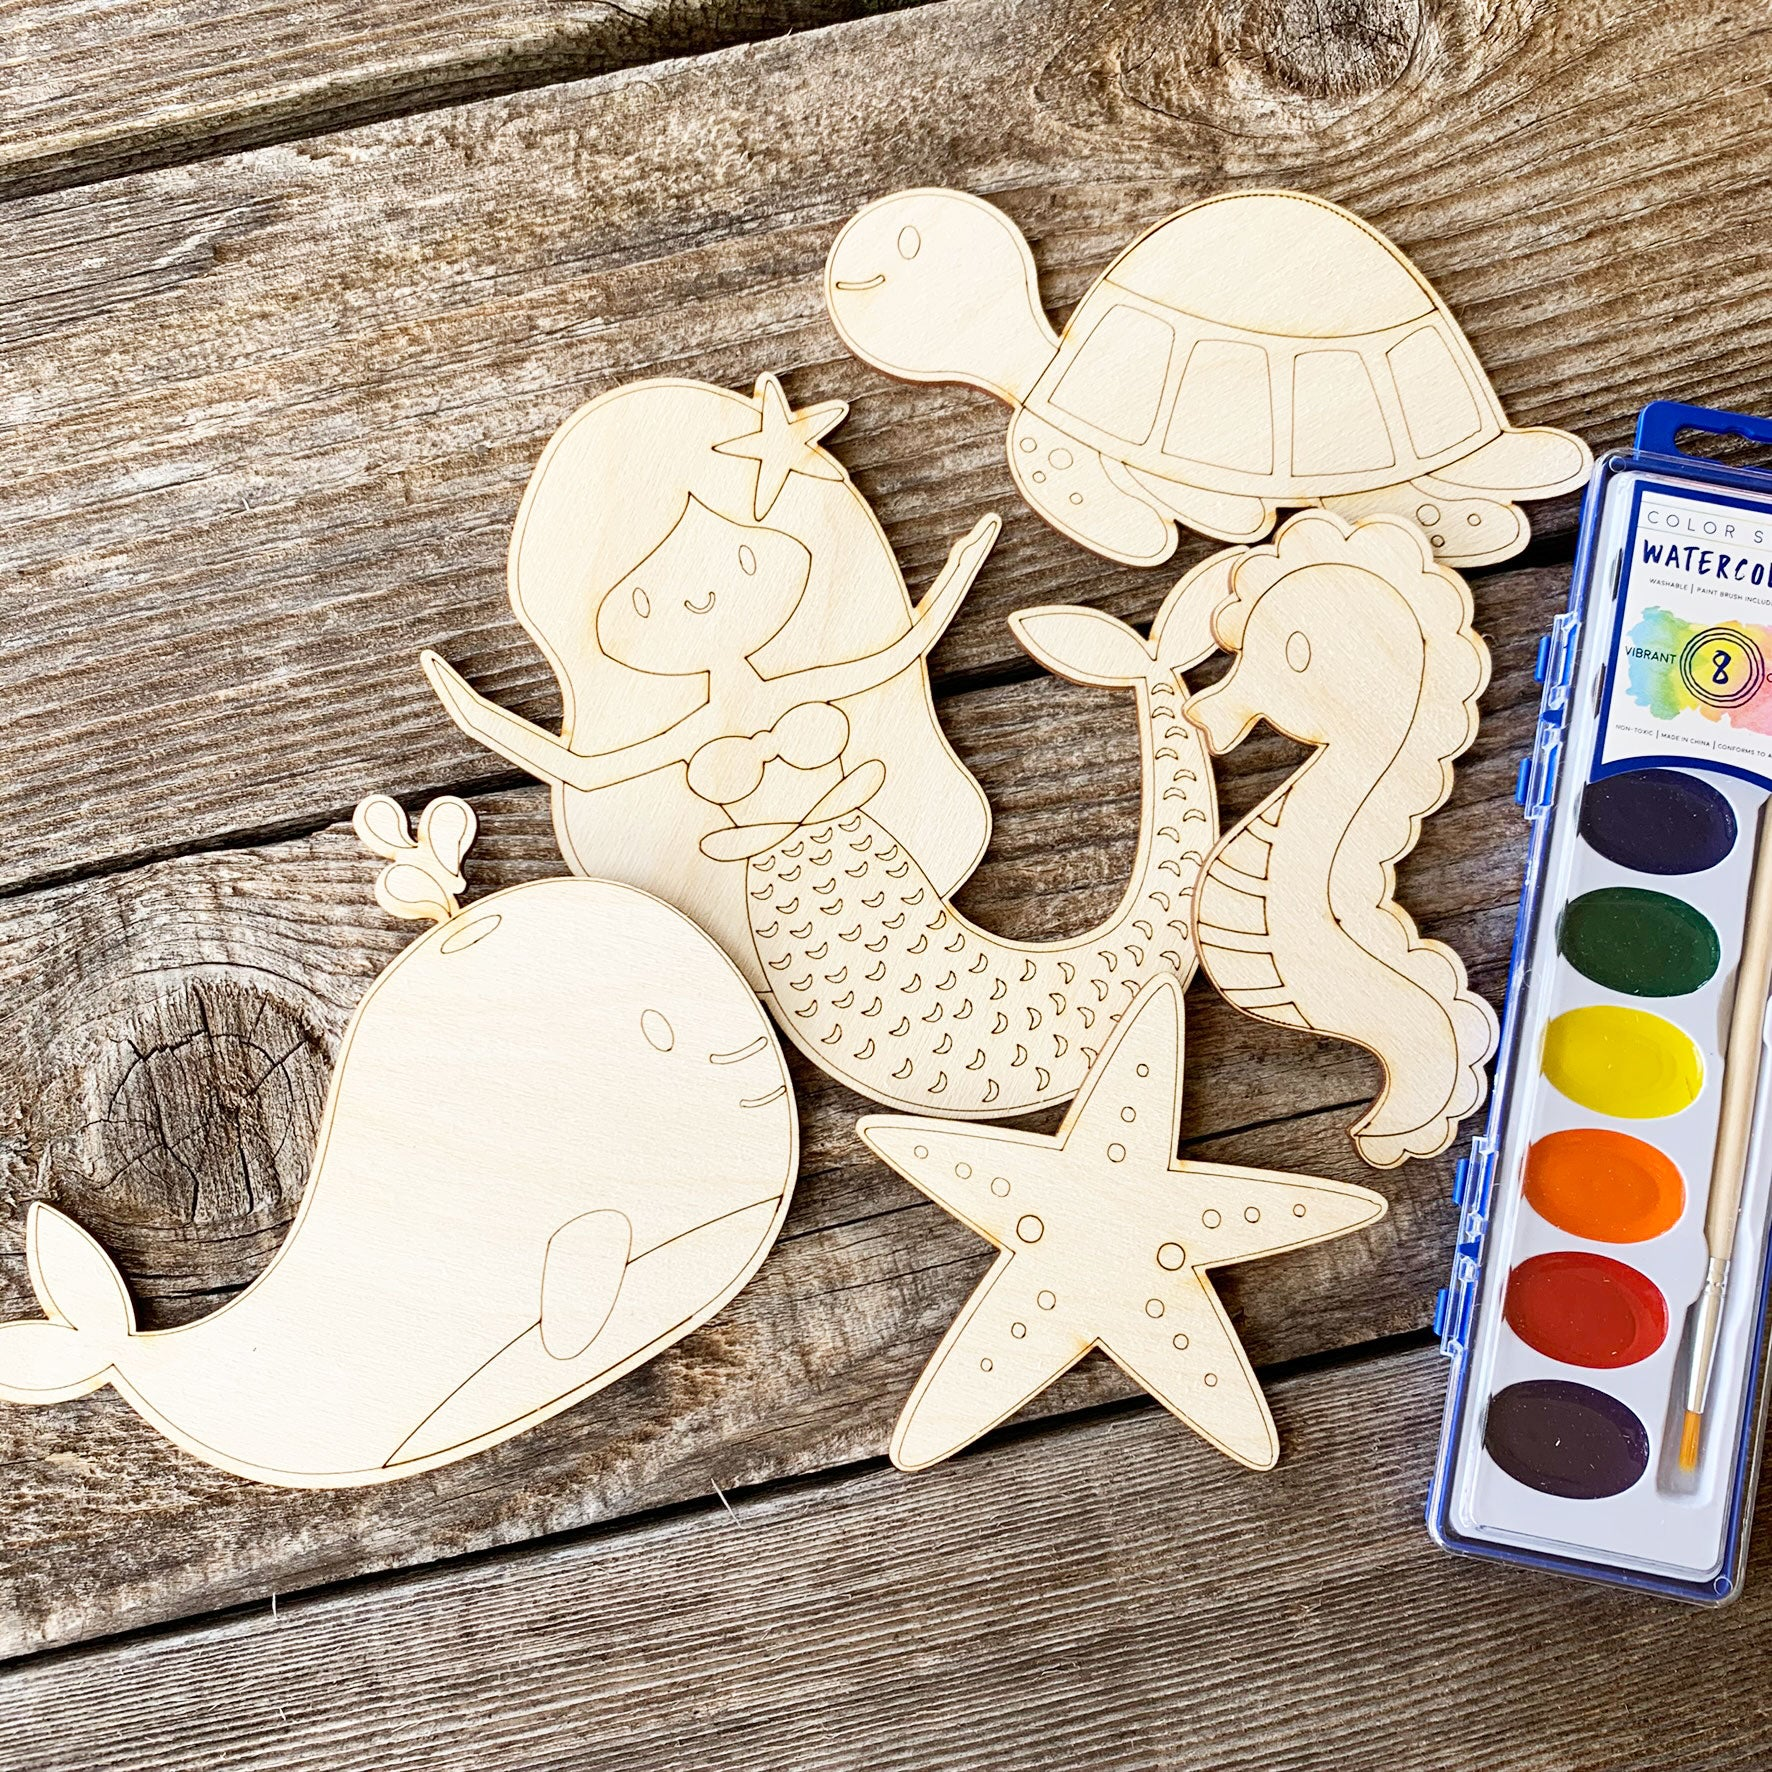 Mermaid painting kit